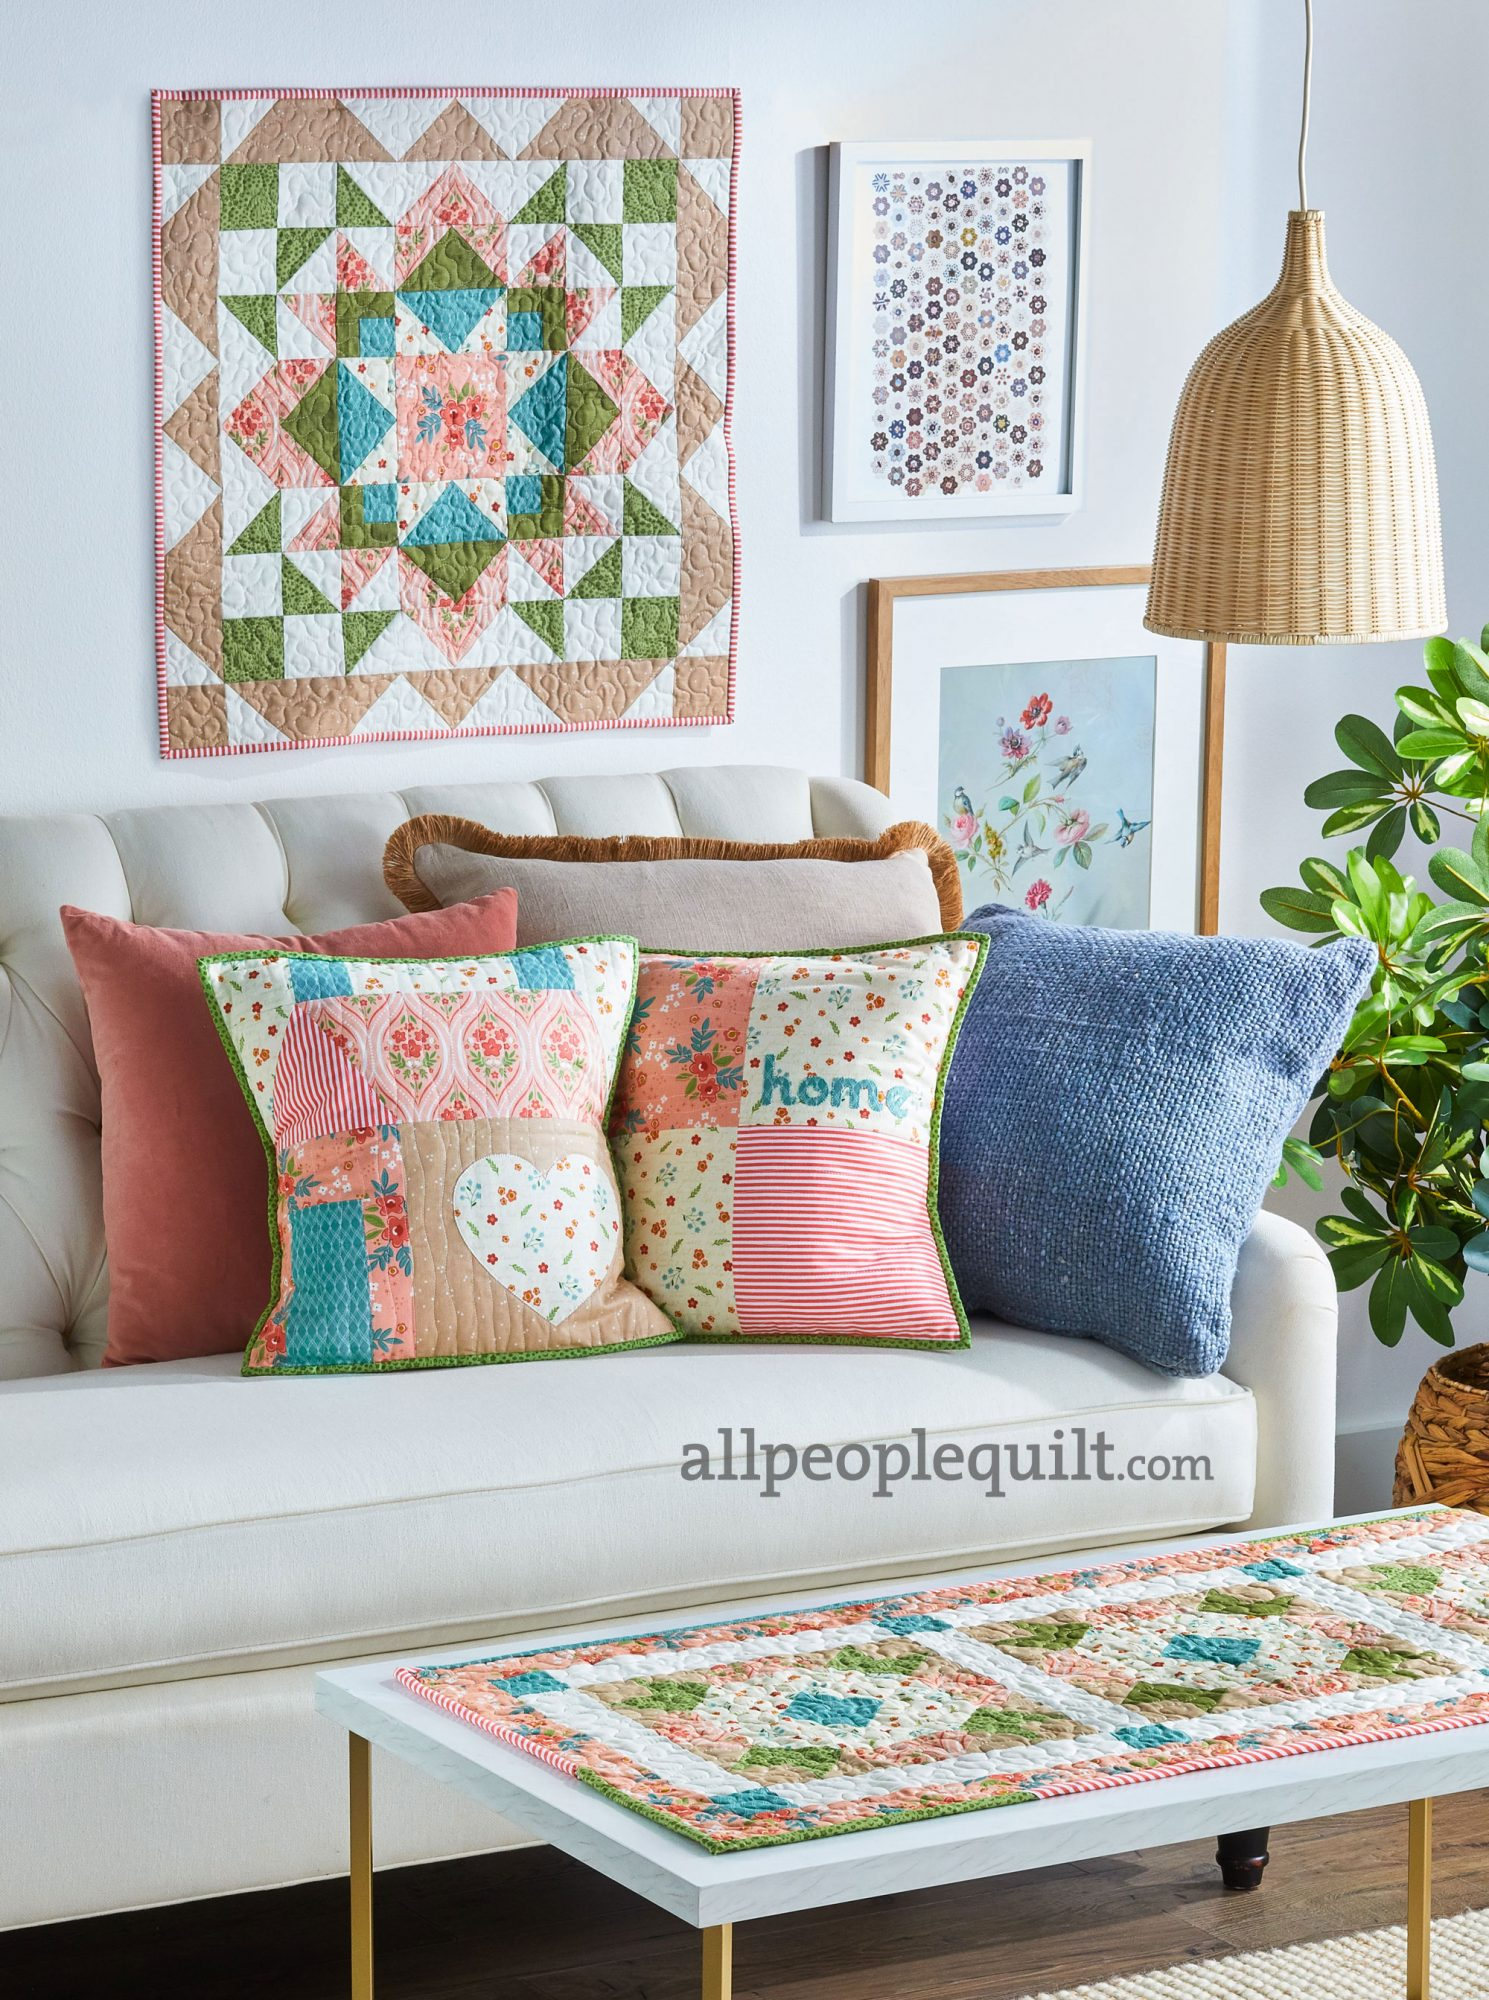 Fabrics: Primrose Hill collection by Melanie Collette of Hello Melly Designs from Riley Blake Designs                             Wall Quilt:                             Designer: Melanie Collette of Hello Melly Designs                             Adorn your wall with a pretty quilt that is a play on a traditional star block.                             Pillow Duo:                             Designer:Kristyne Czepuryk                             Celebrate the comforts of home with throw pillows featuring appliquéd accents.                             Table Runner:                             Designer:Amanda Niederhauser                             Versatile triangle-square units come together in a cheerful table runner.                             Missed this issue?Get a digital version here.